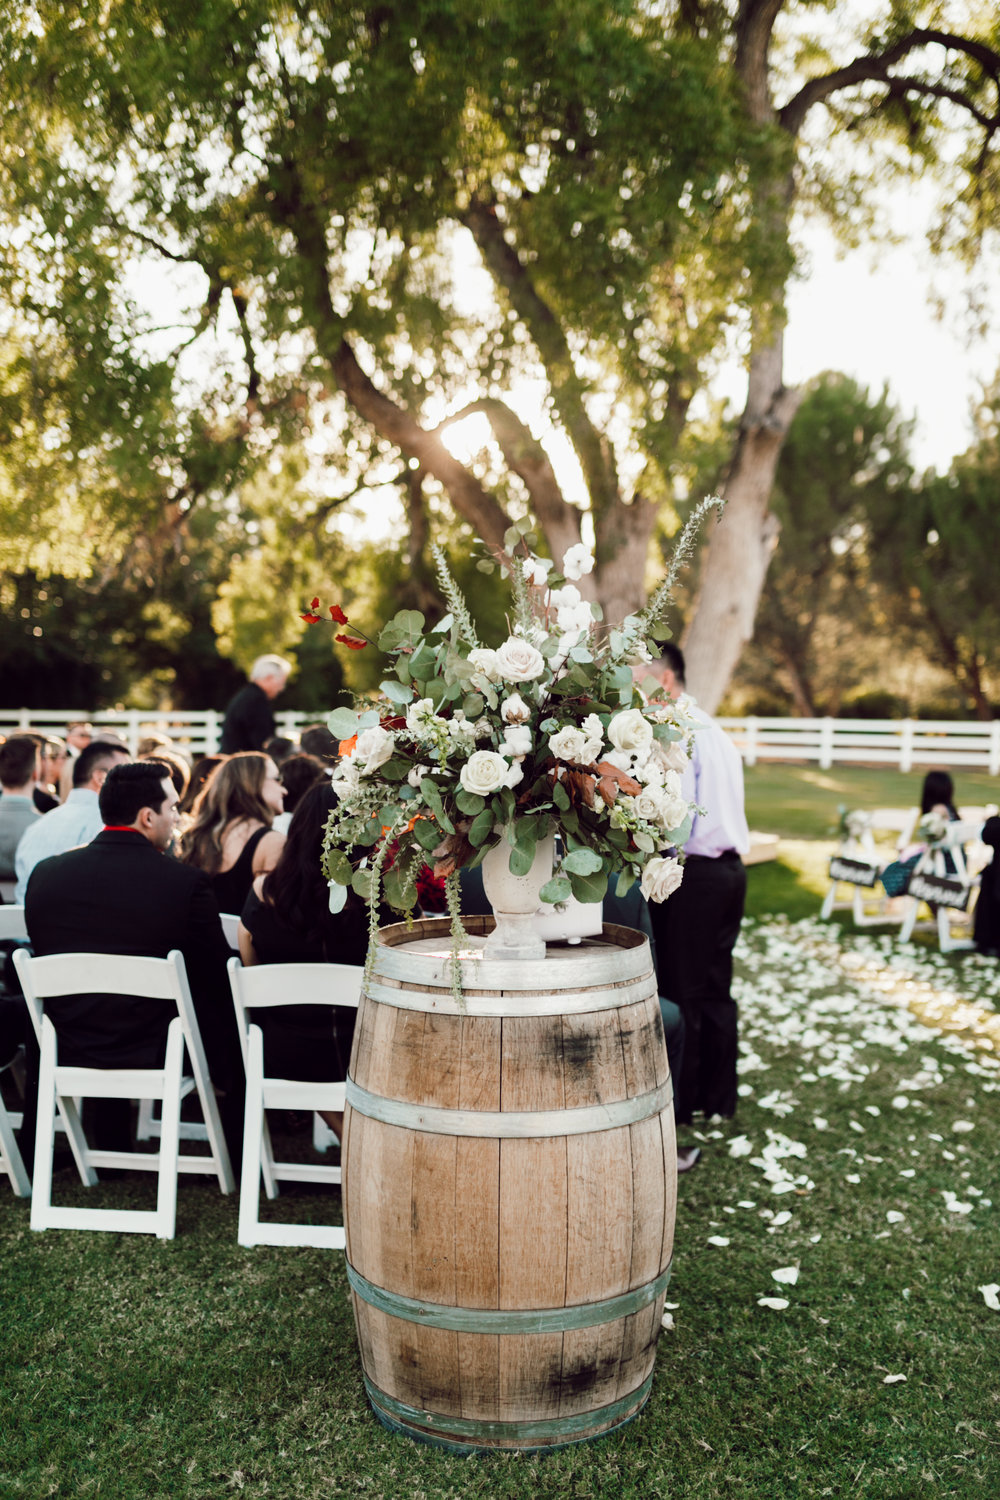 DA Ranch Fall Wedding - Wine Barrel Ceremony Entrance